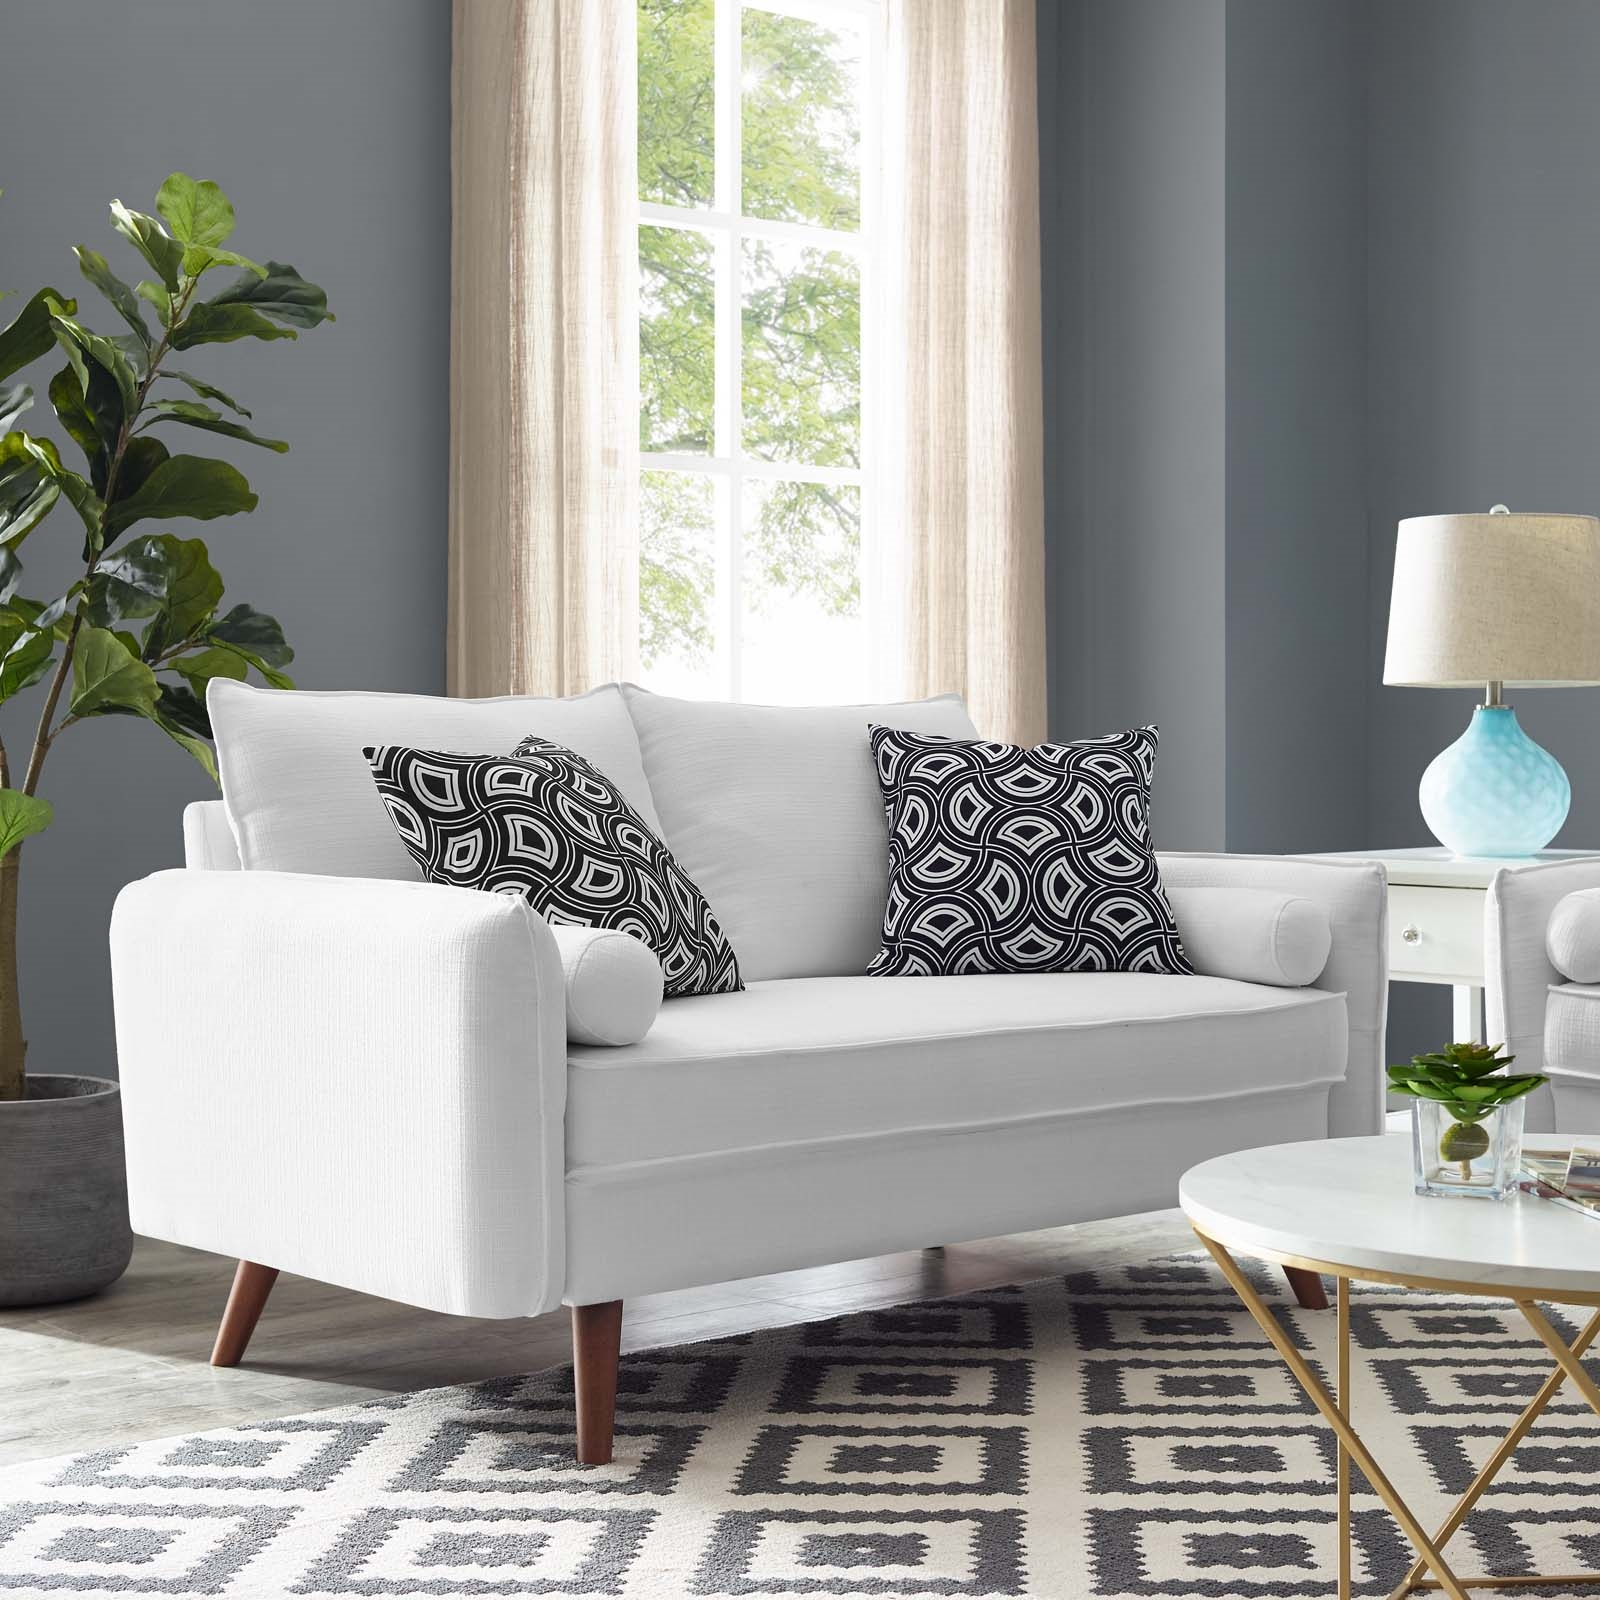 Revive Upholstered Fabric Loveseat in White